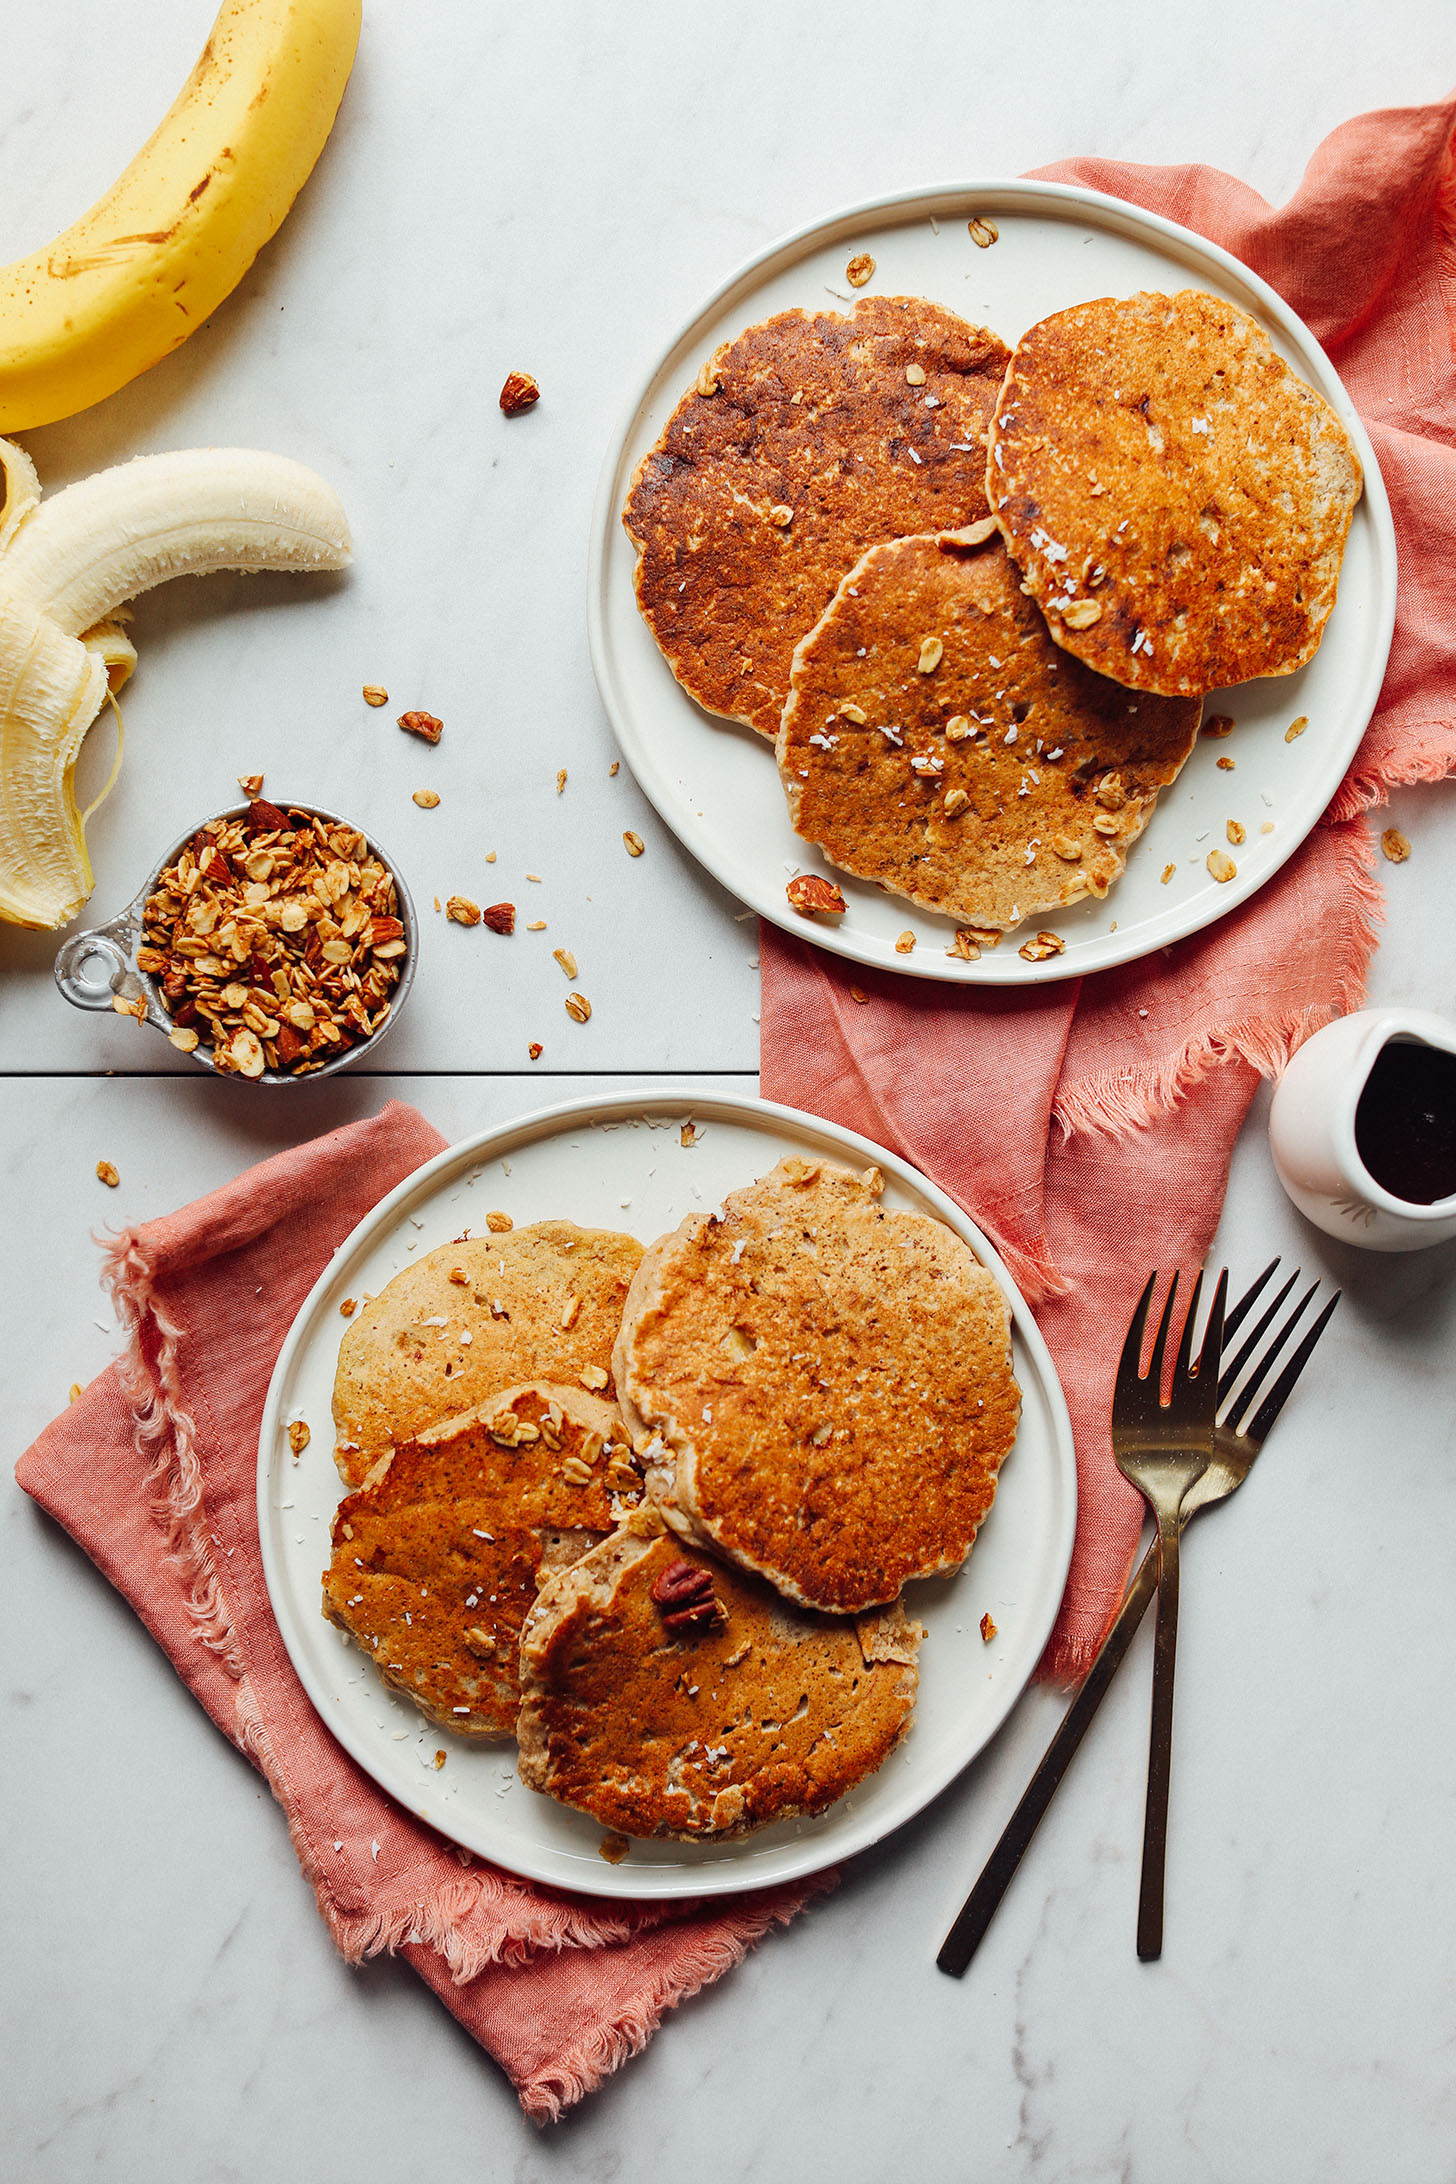 Two plates with gluten-free vegan Banana Pancakes sprinkled with granola